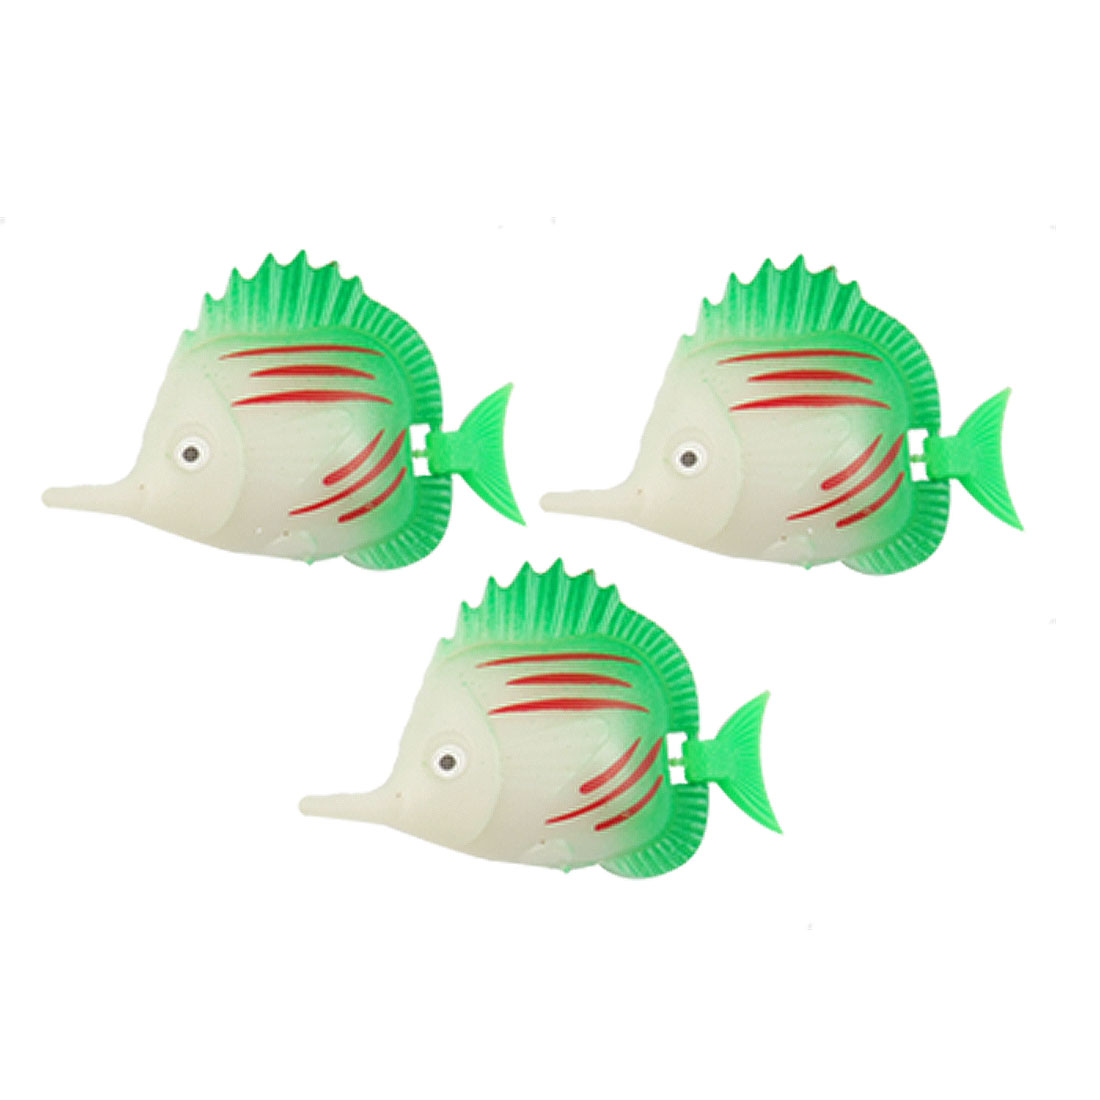 Aquarium Wiggled Tail Tri Color Striped Plastic Faux Fish 3 Pcs